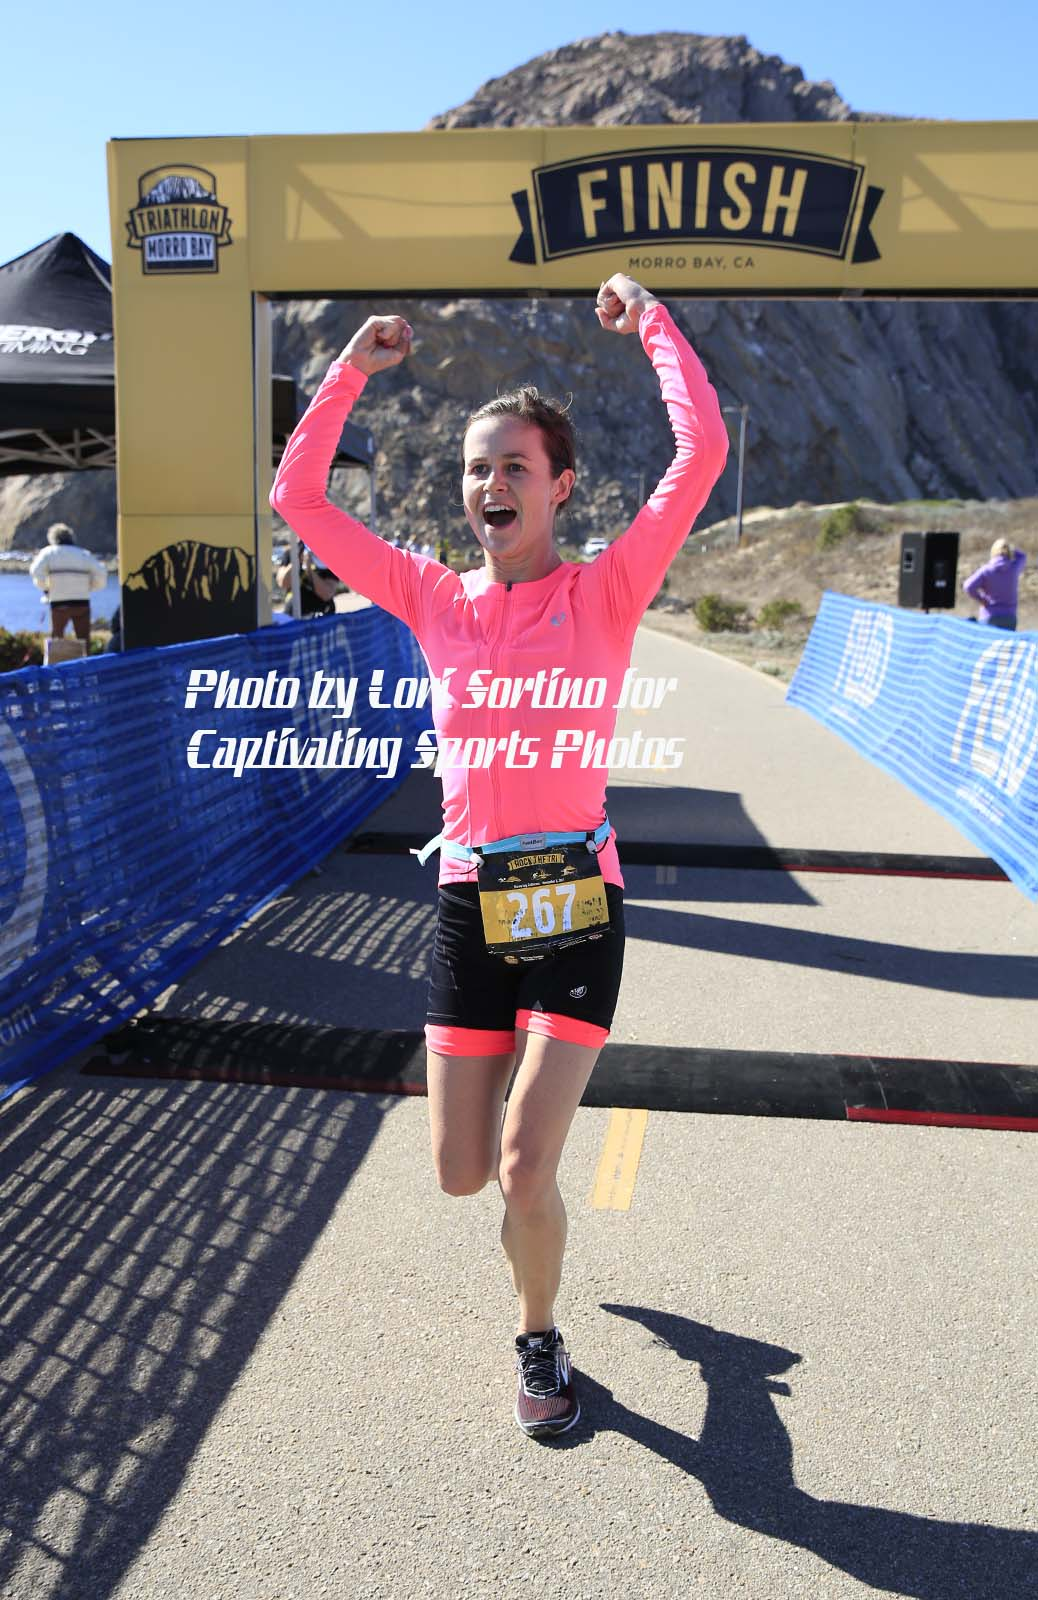 female triathlete after finish line hot pink long sleeve top celebrating